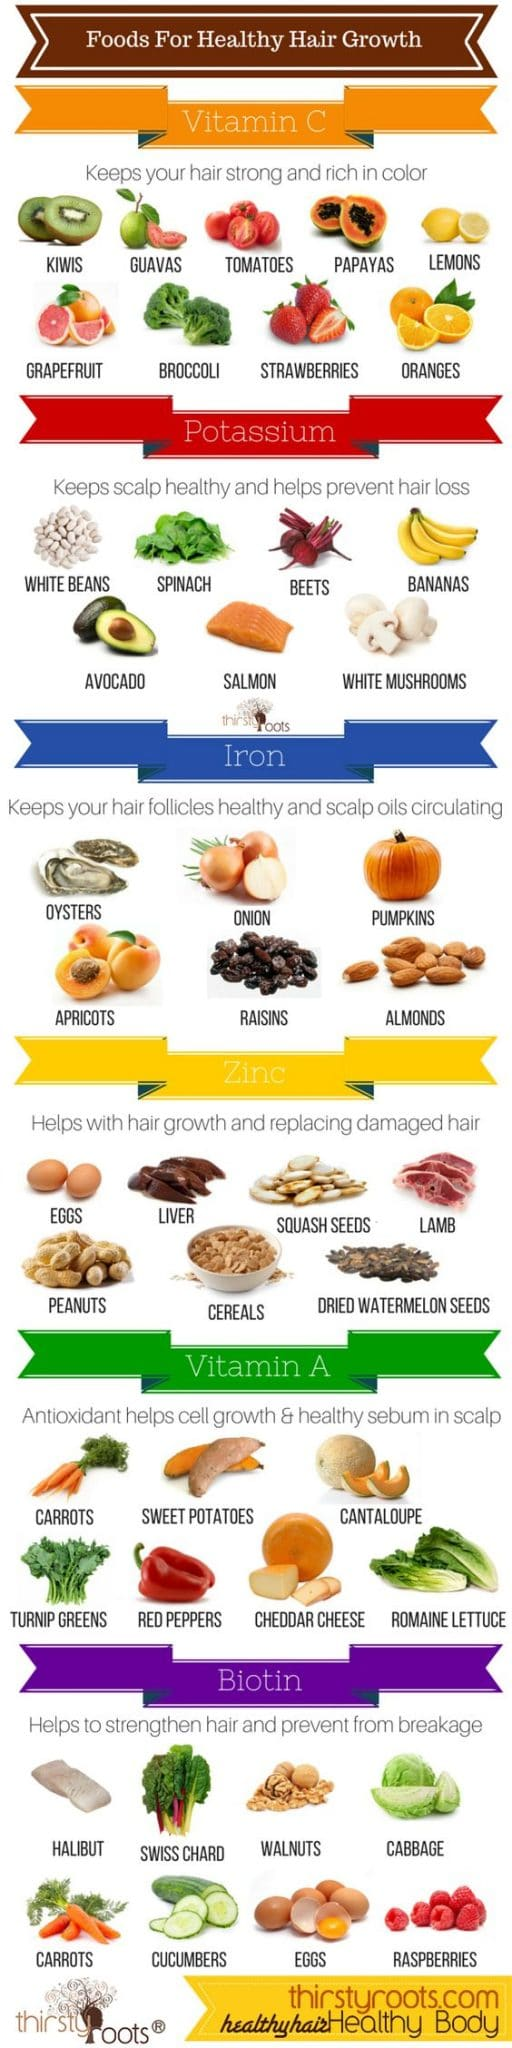 44 Foods For Healthy Hair Growth